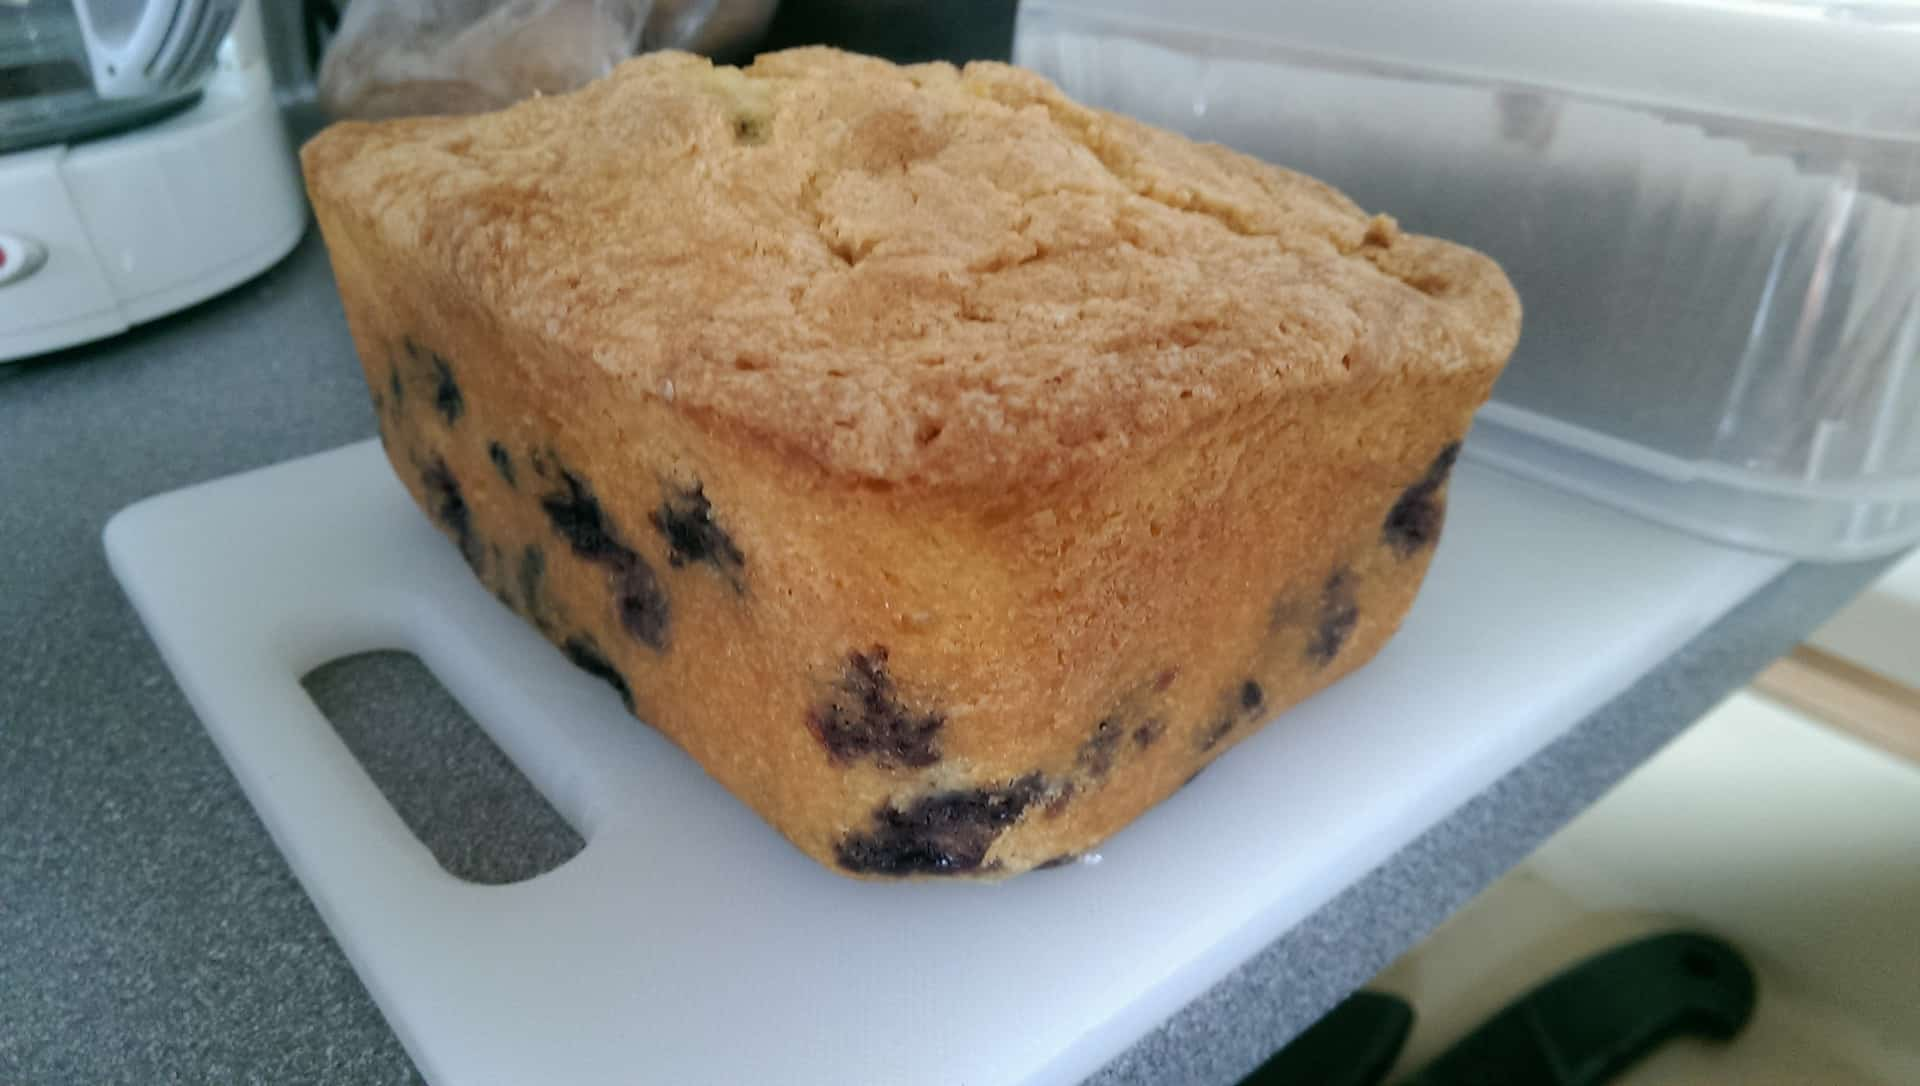 blueberry loaf cake 05 08 2014 06 blueberry loaf cake capital computer care 1973